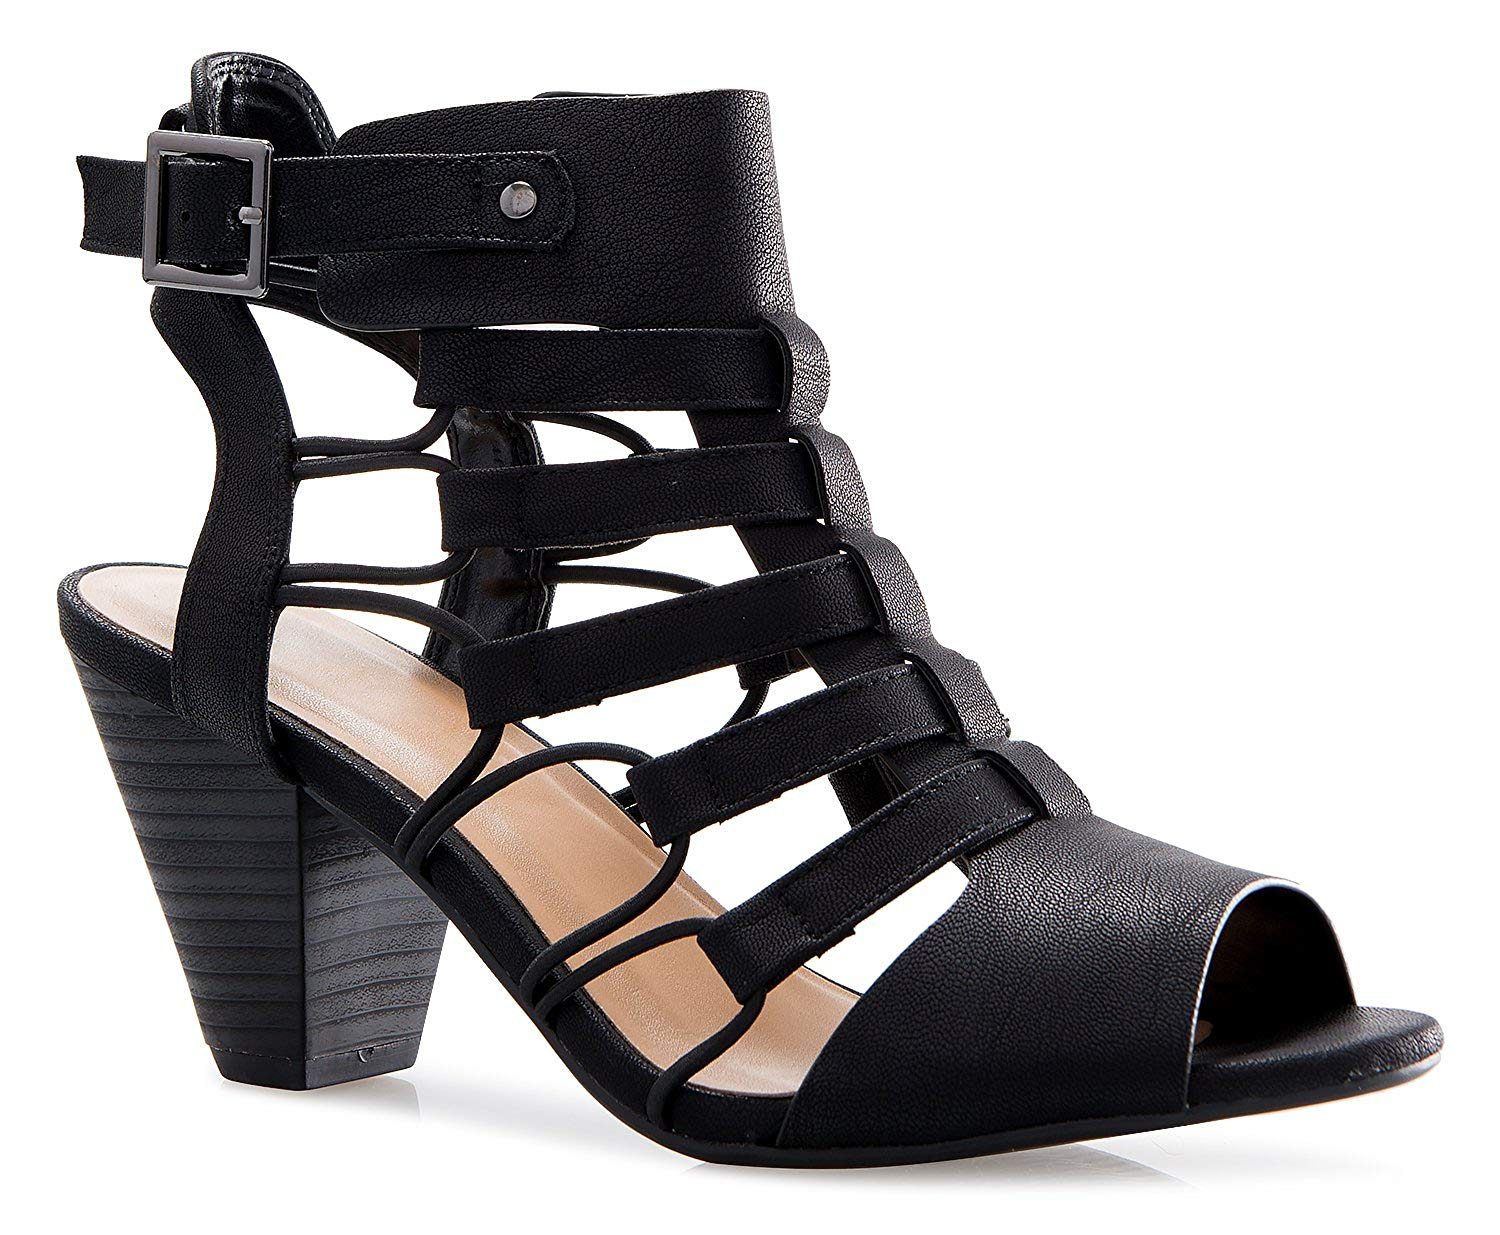 597bcb530 Get Quotations · OLIVIA K Women's Strappy Cord Wedge Sandals - Sexy Open  Toe Heel - Comfort, Fasionable